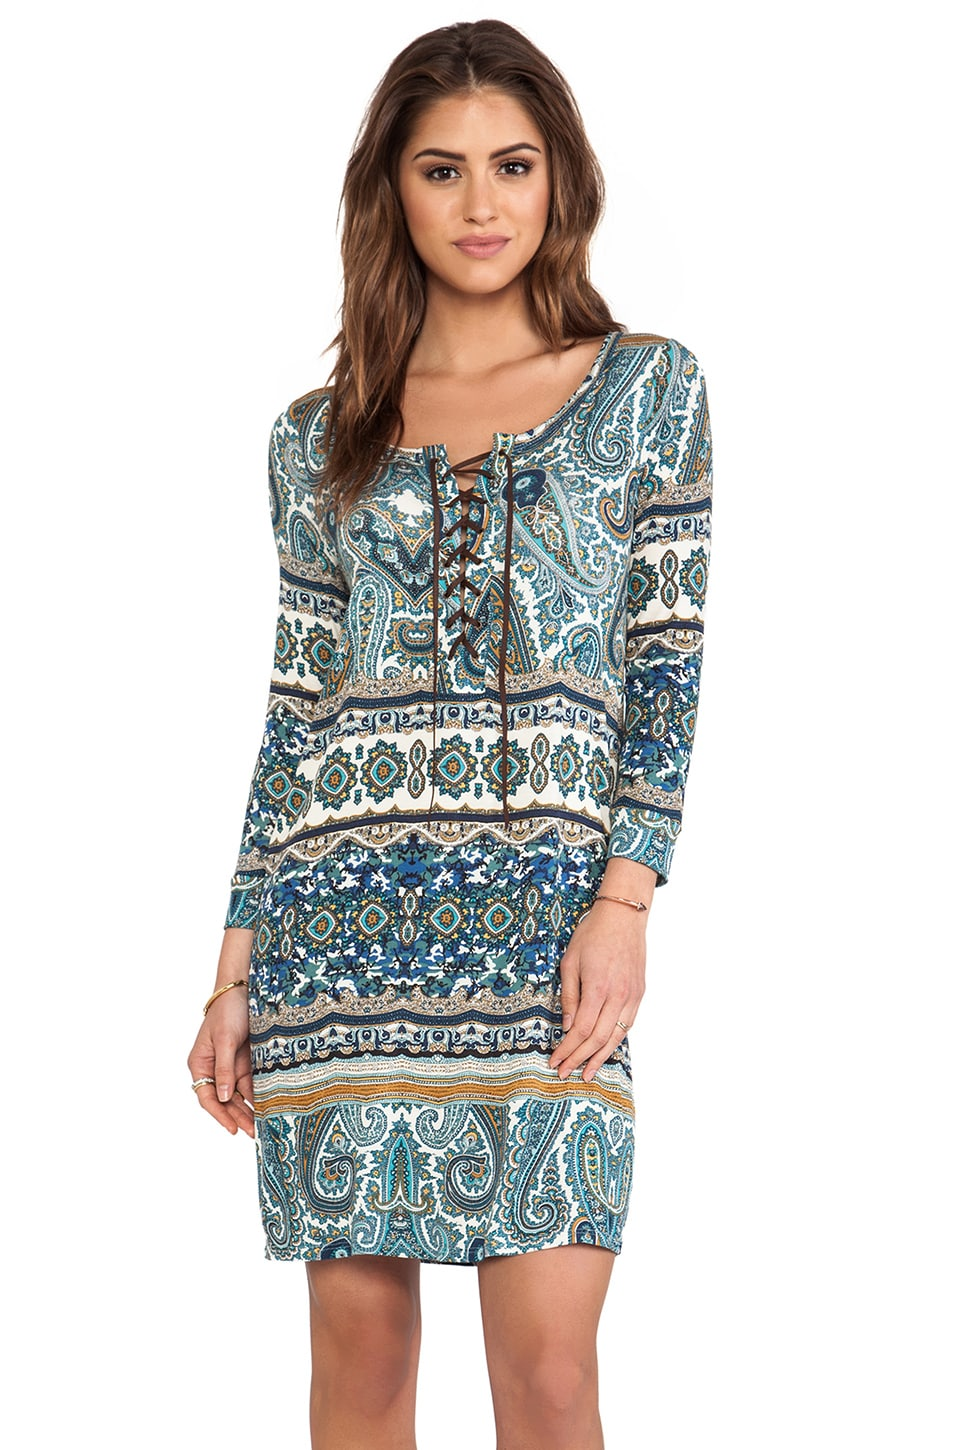 Velvet by Graham & Spencer Posy Taj Print Dress in Nightfall